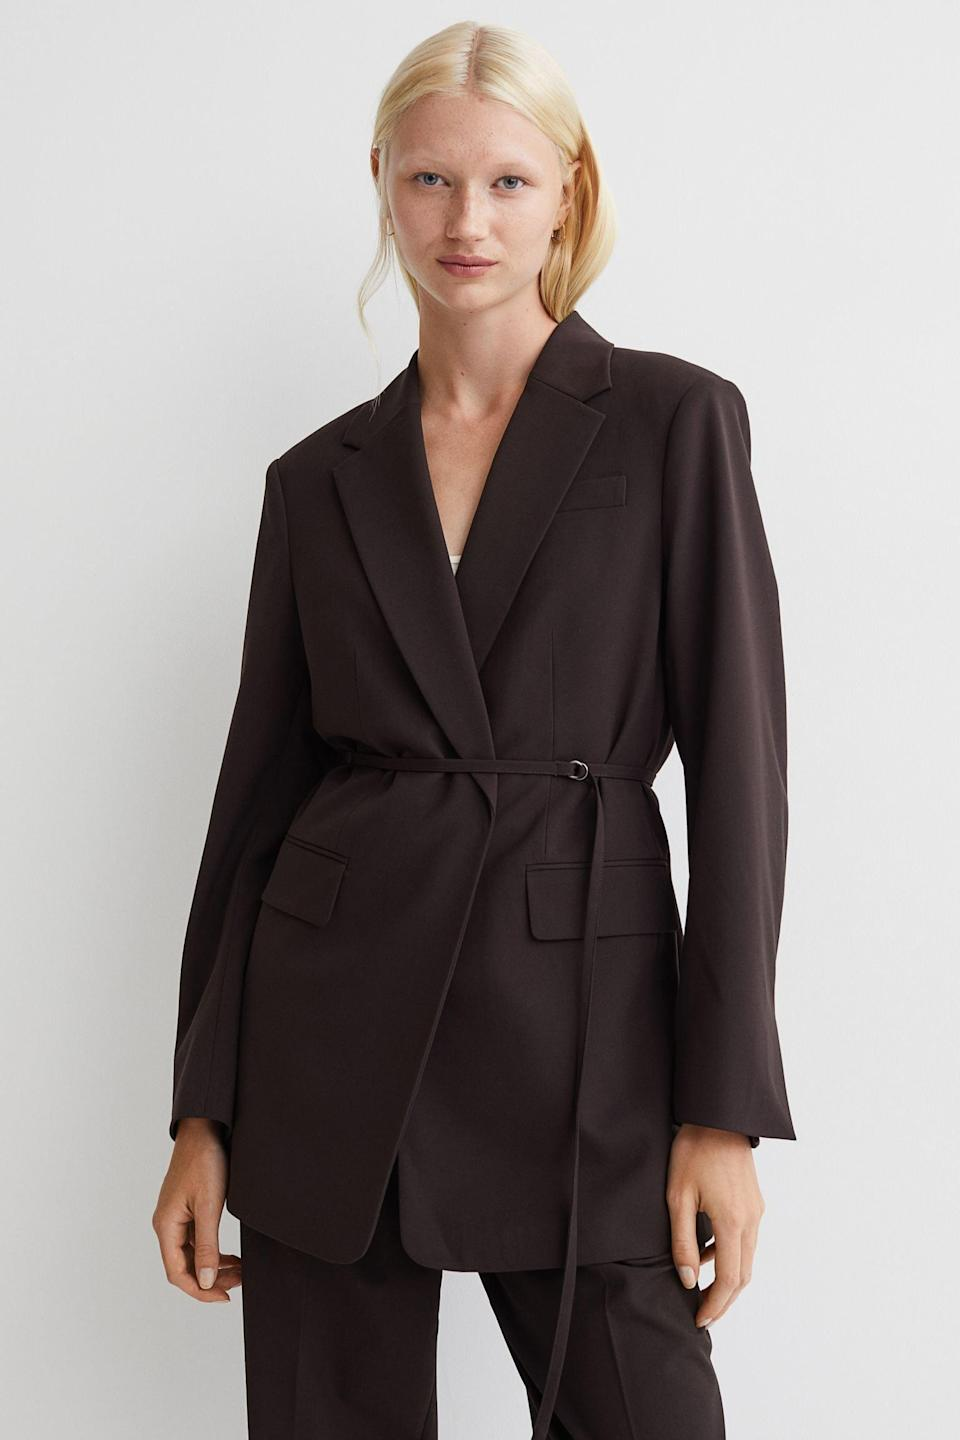 <p>Fashion meets business in this stylish <span>Belted Jacket</span> ($50), which exudes confidence and know-how. Complete your look with trousers and some kitten heels.</p>